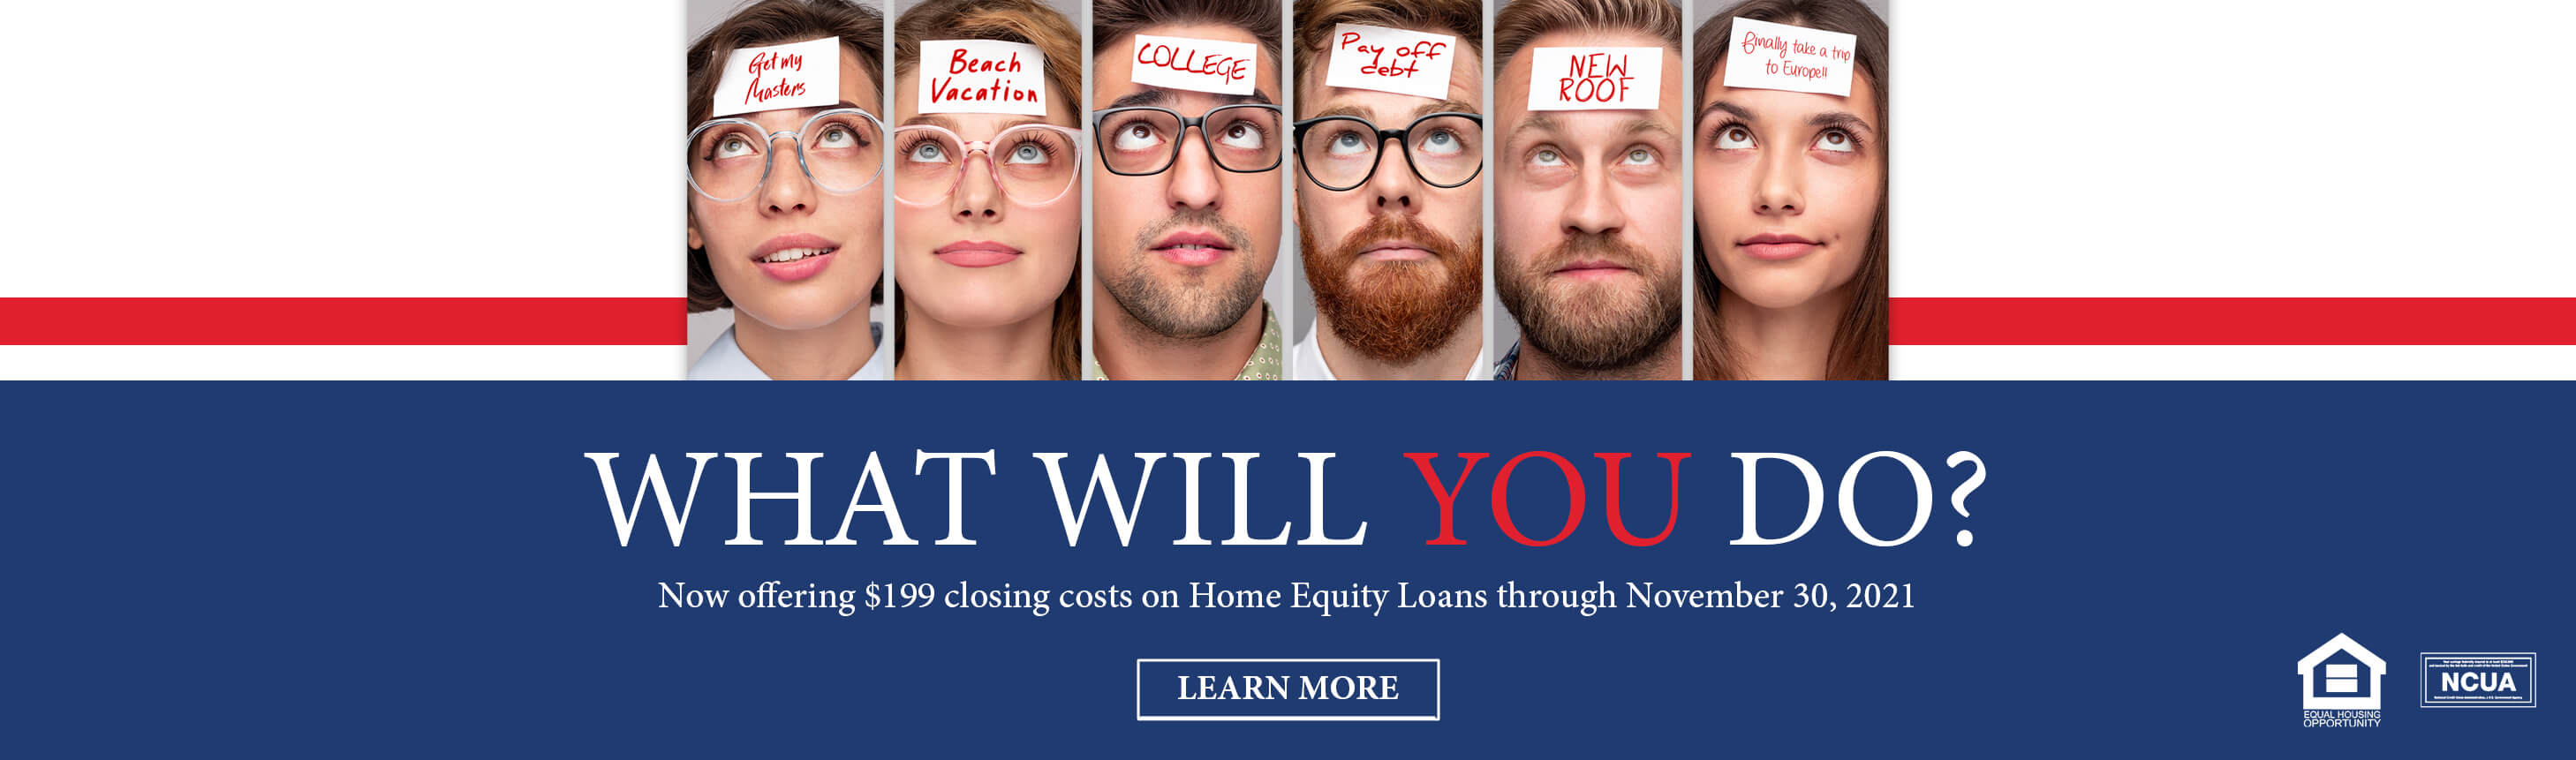 What will you do? Now offering $199 closing costs on Home Equity Loans through November 30, 2021. Learn more.